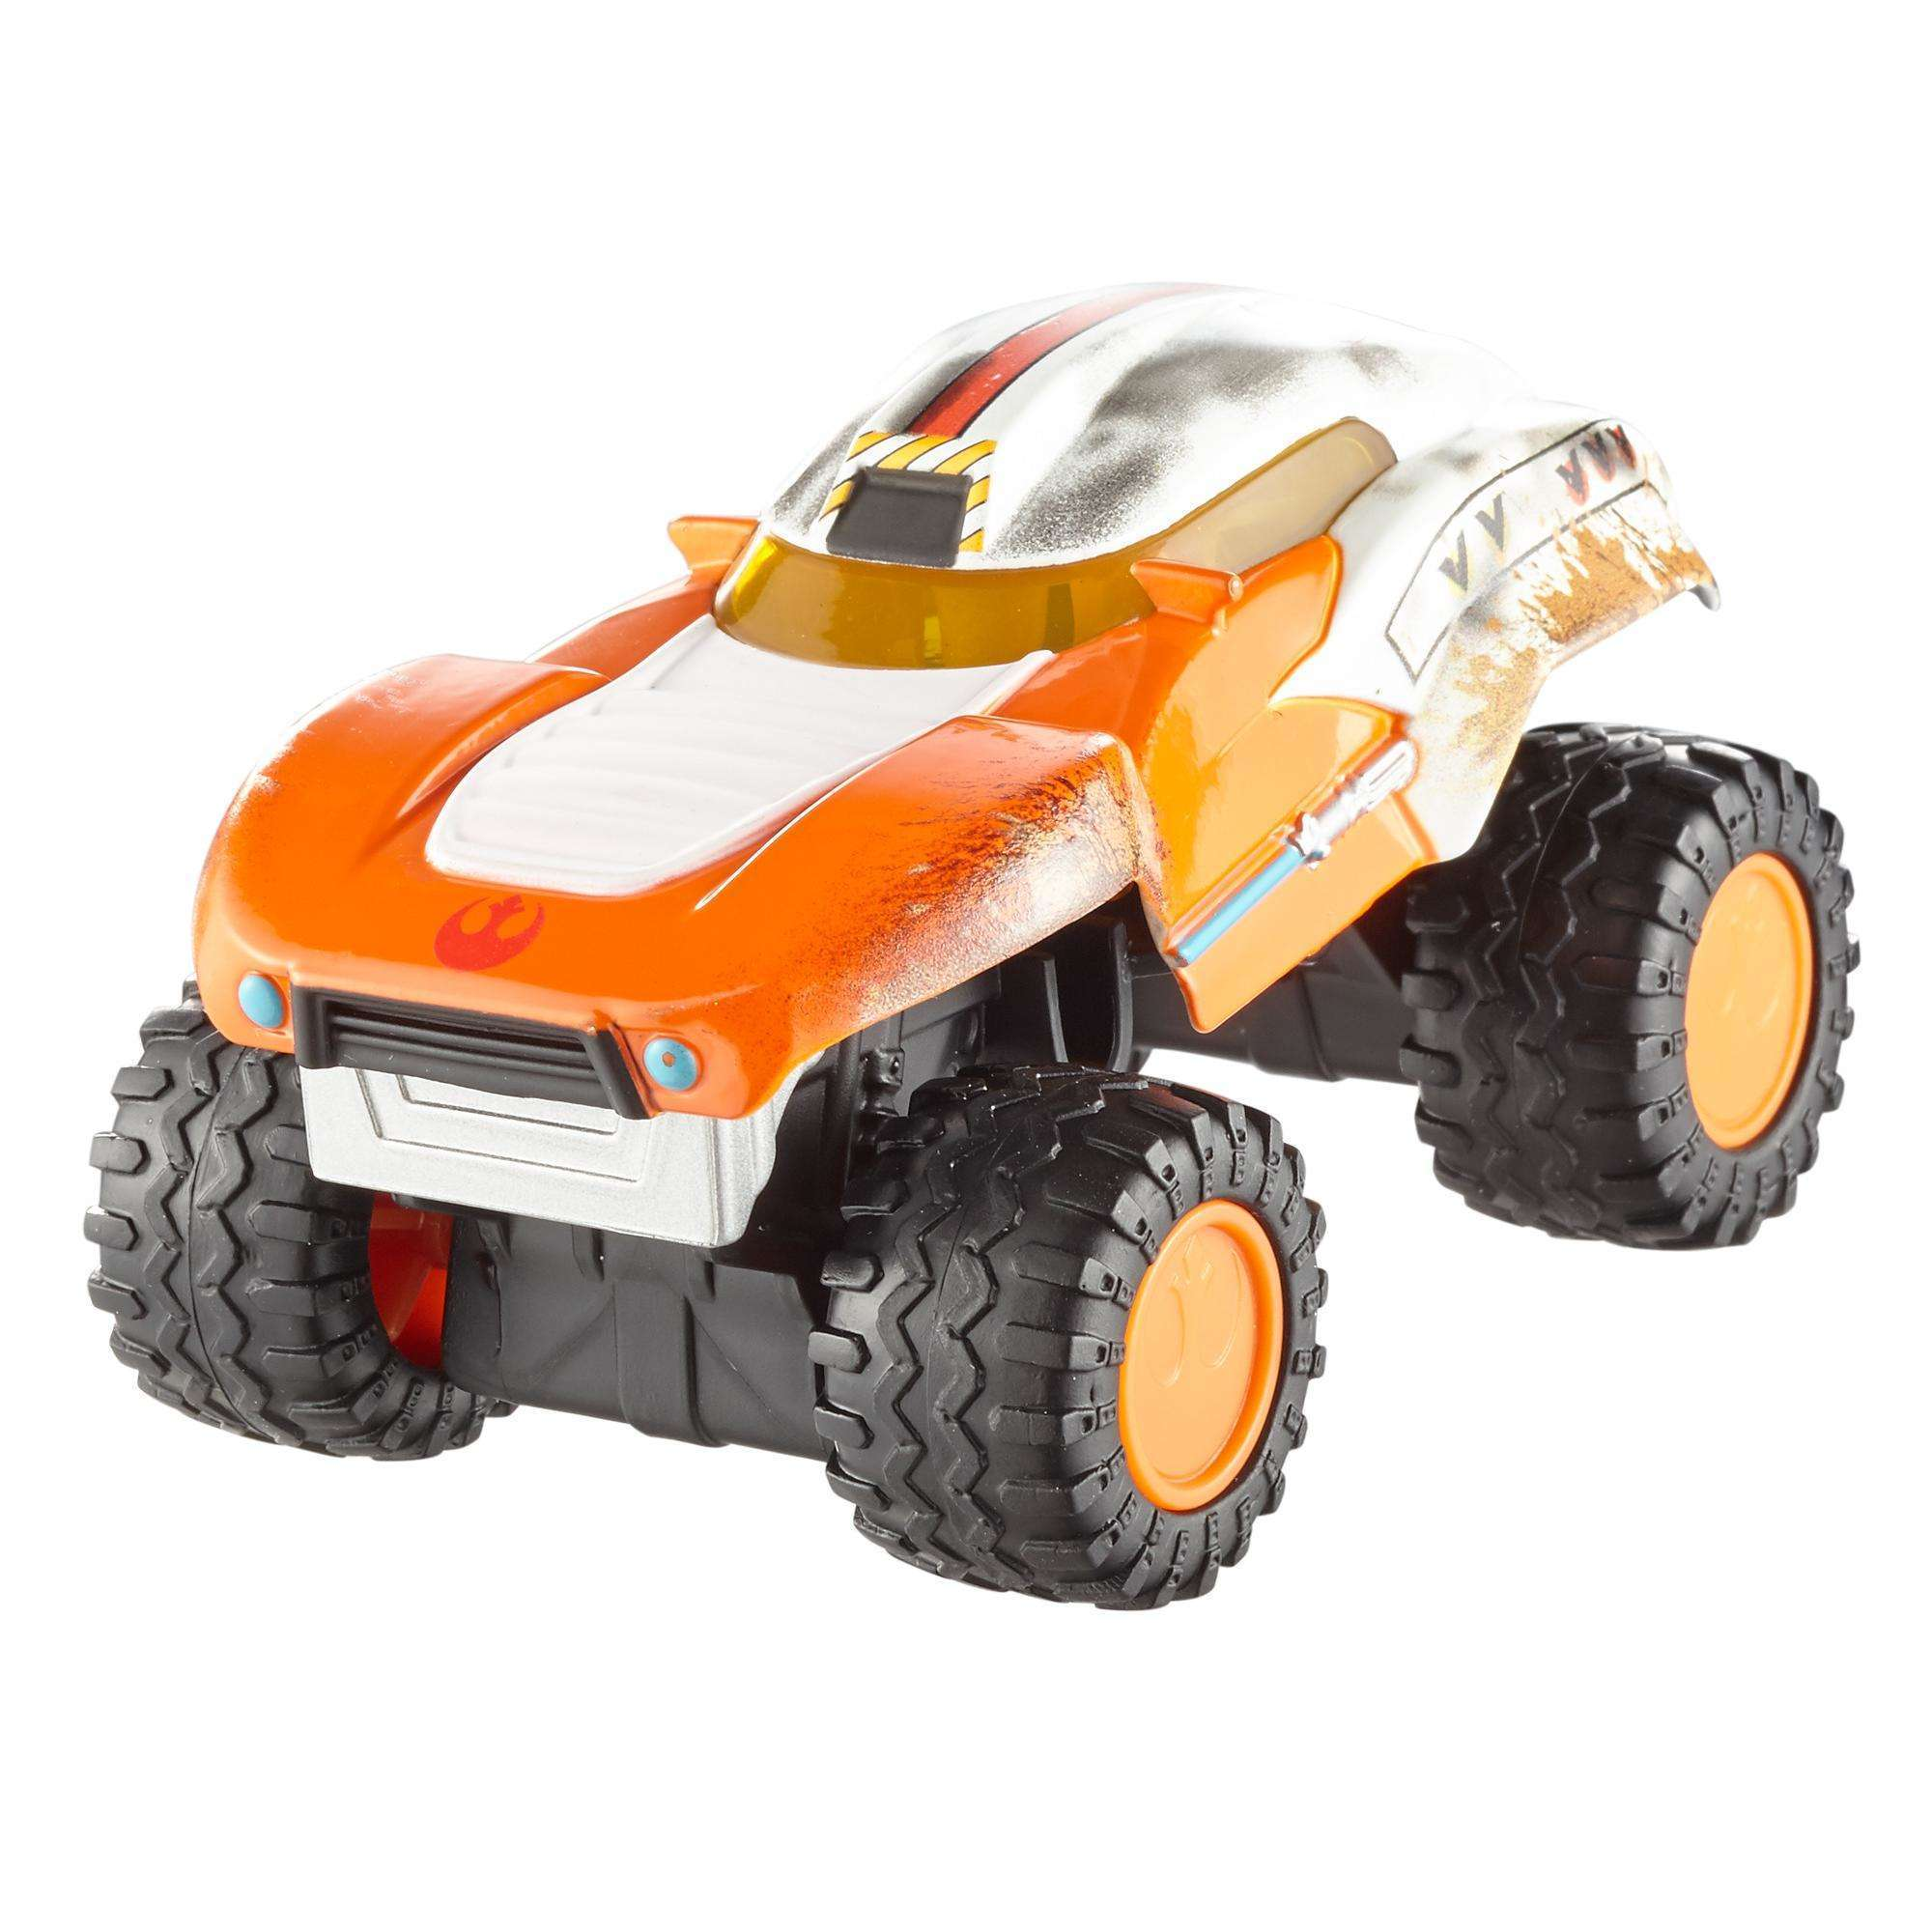 Hot Wheels Star Wars All-terrain Luke Skywalker, Vehicle